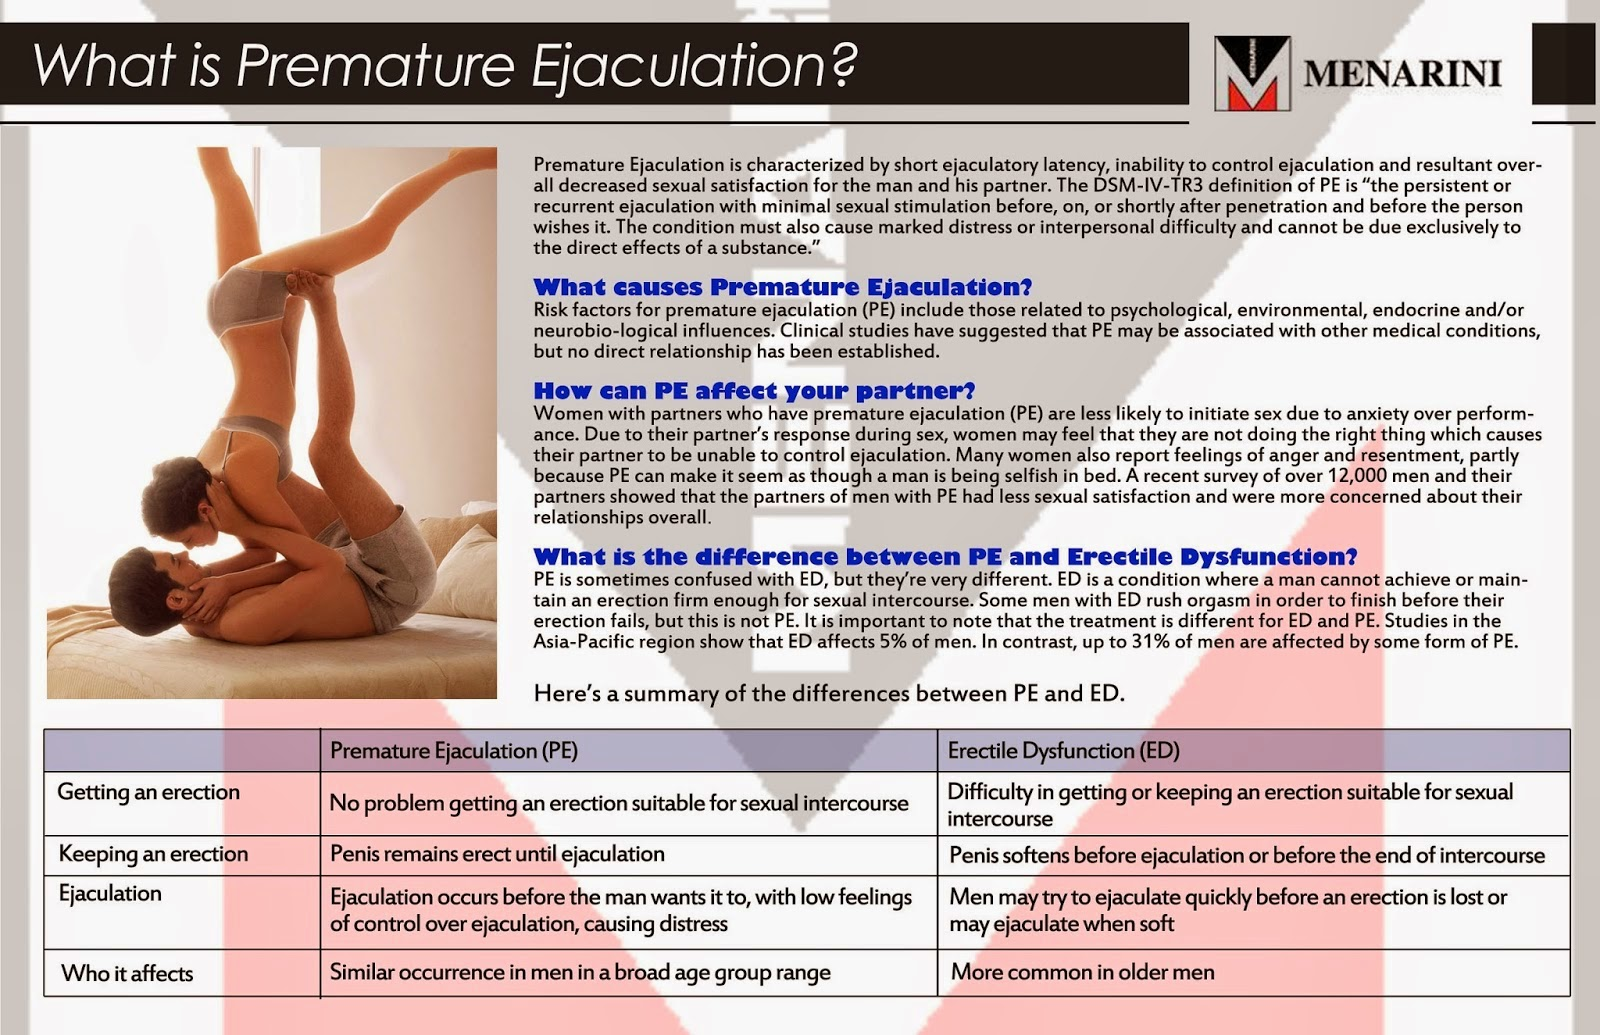 dating a guy with premature ejaculation Actsheet what is ejaculation sydney men's health sydney date reviewed: treatment for premature ejaculation (in men 18-64 years old).